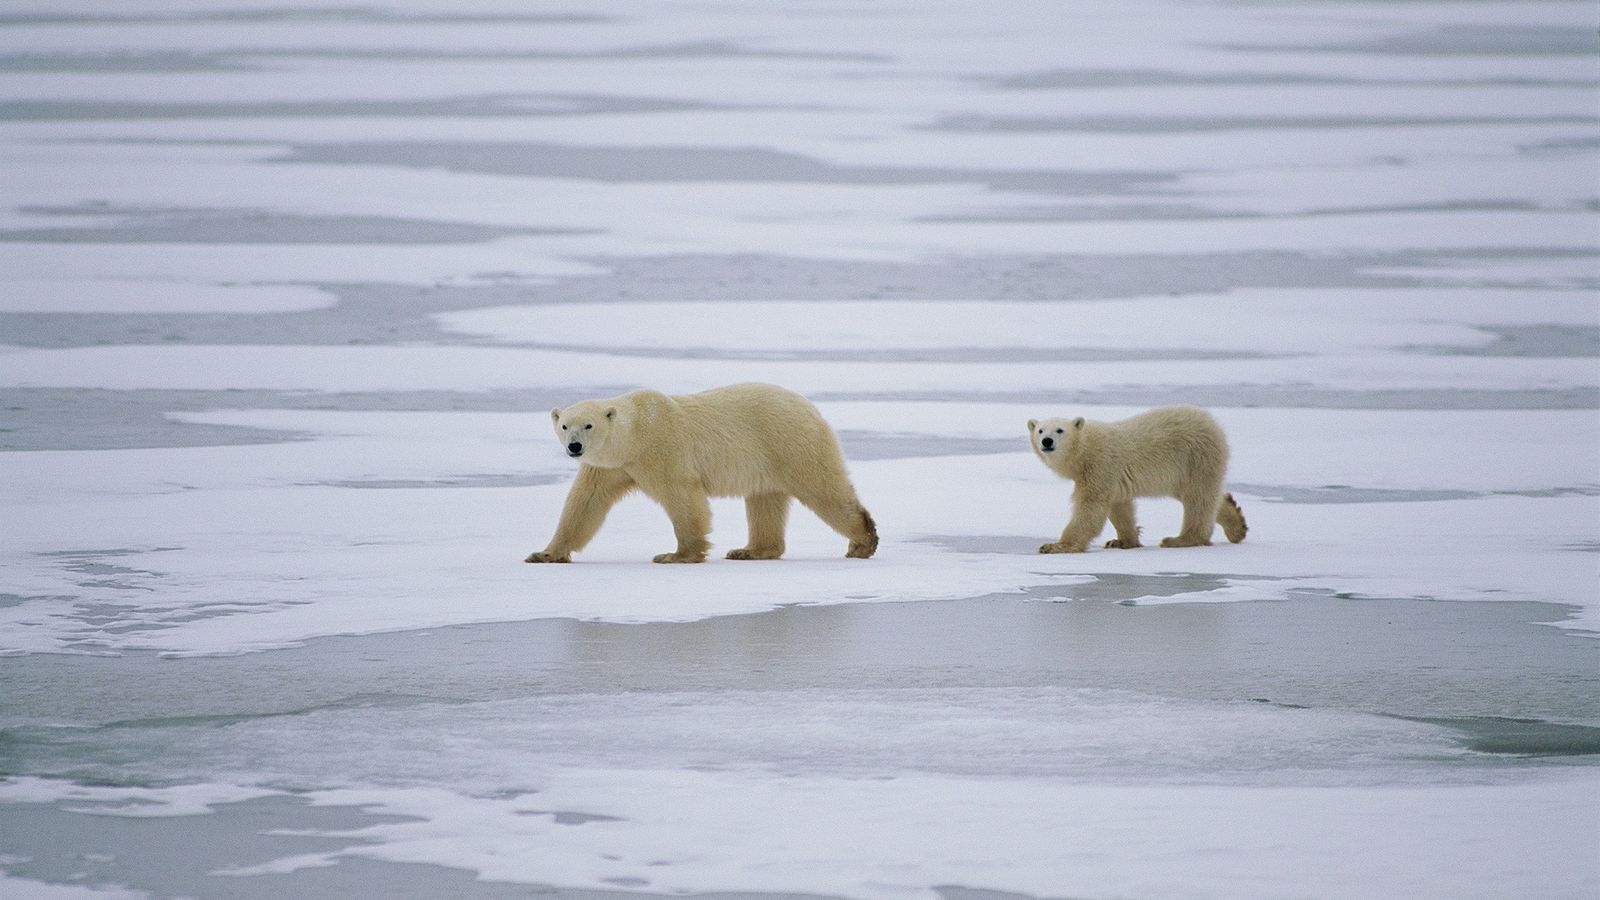 A mother polar bear and her cub traverse the sea ice in Nunavut, Canada.